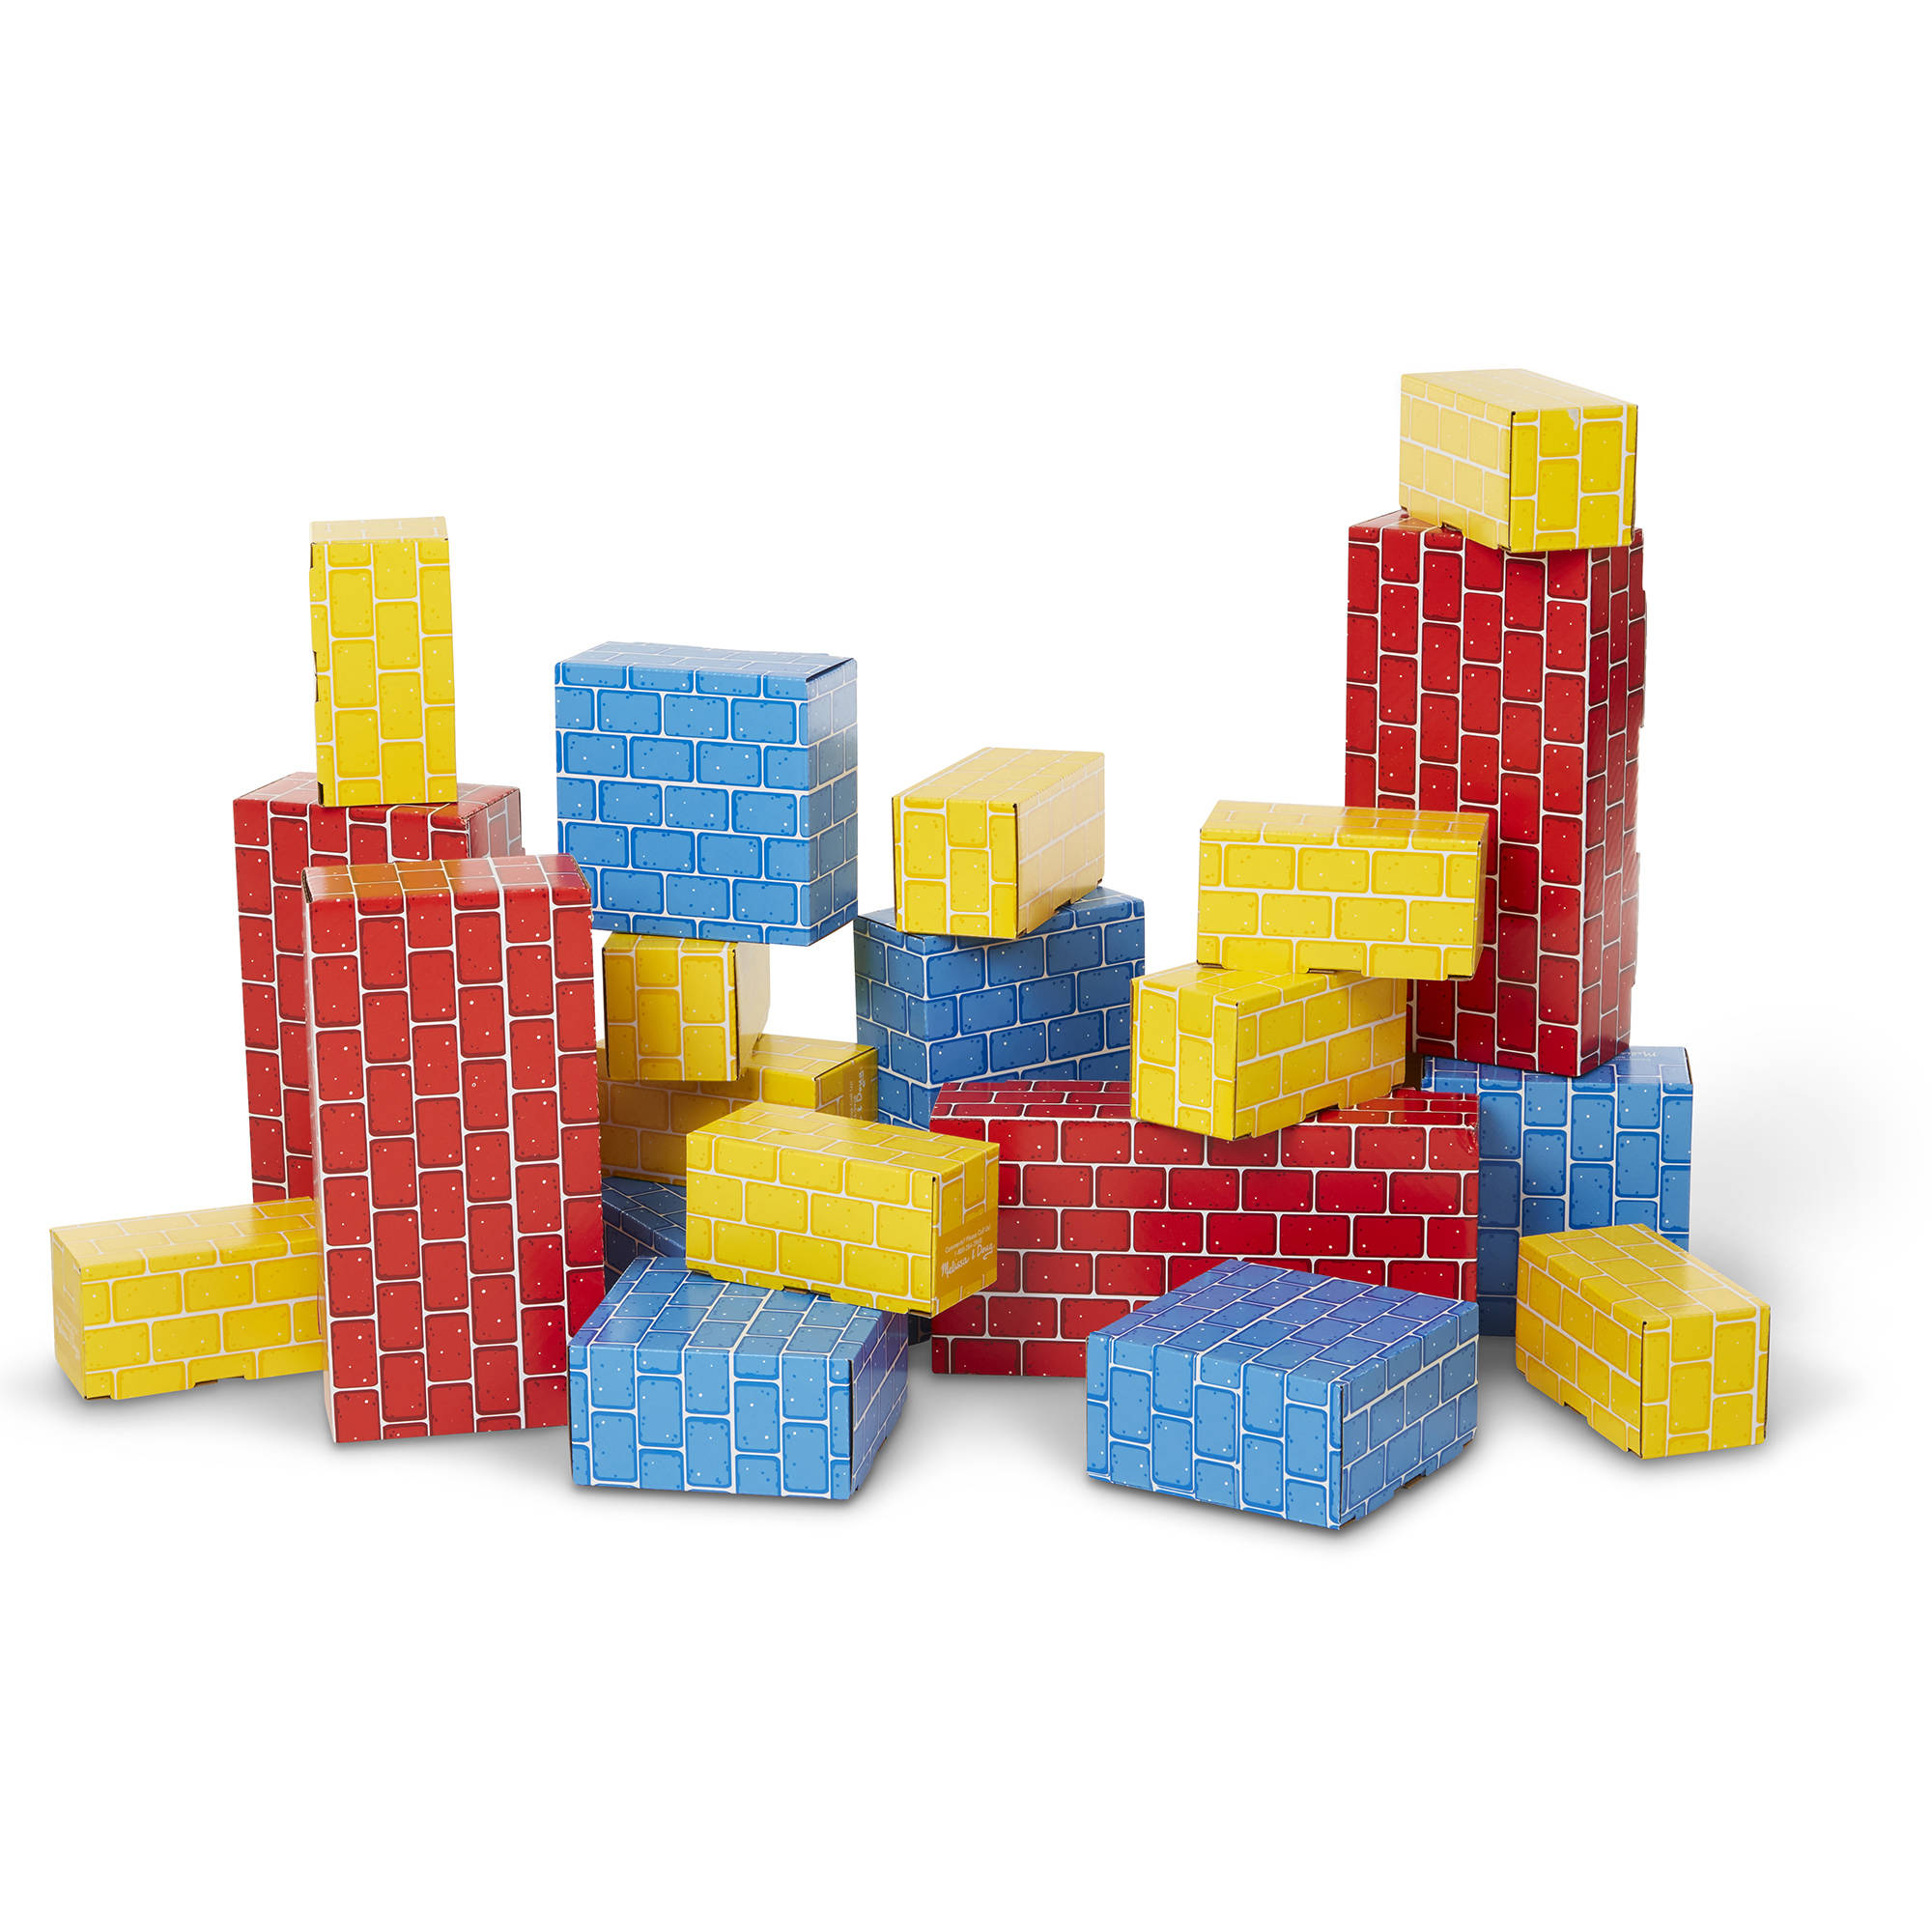 Melissa & Doug Extra-Thick Cardboard Building Blocks 24 Blocks in 3 Sizes by Melissa and Doug